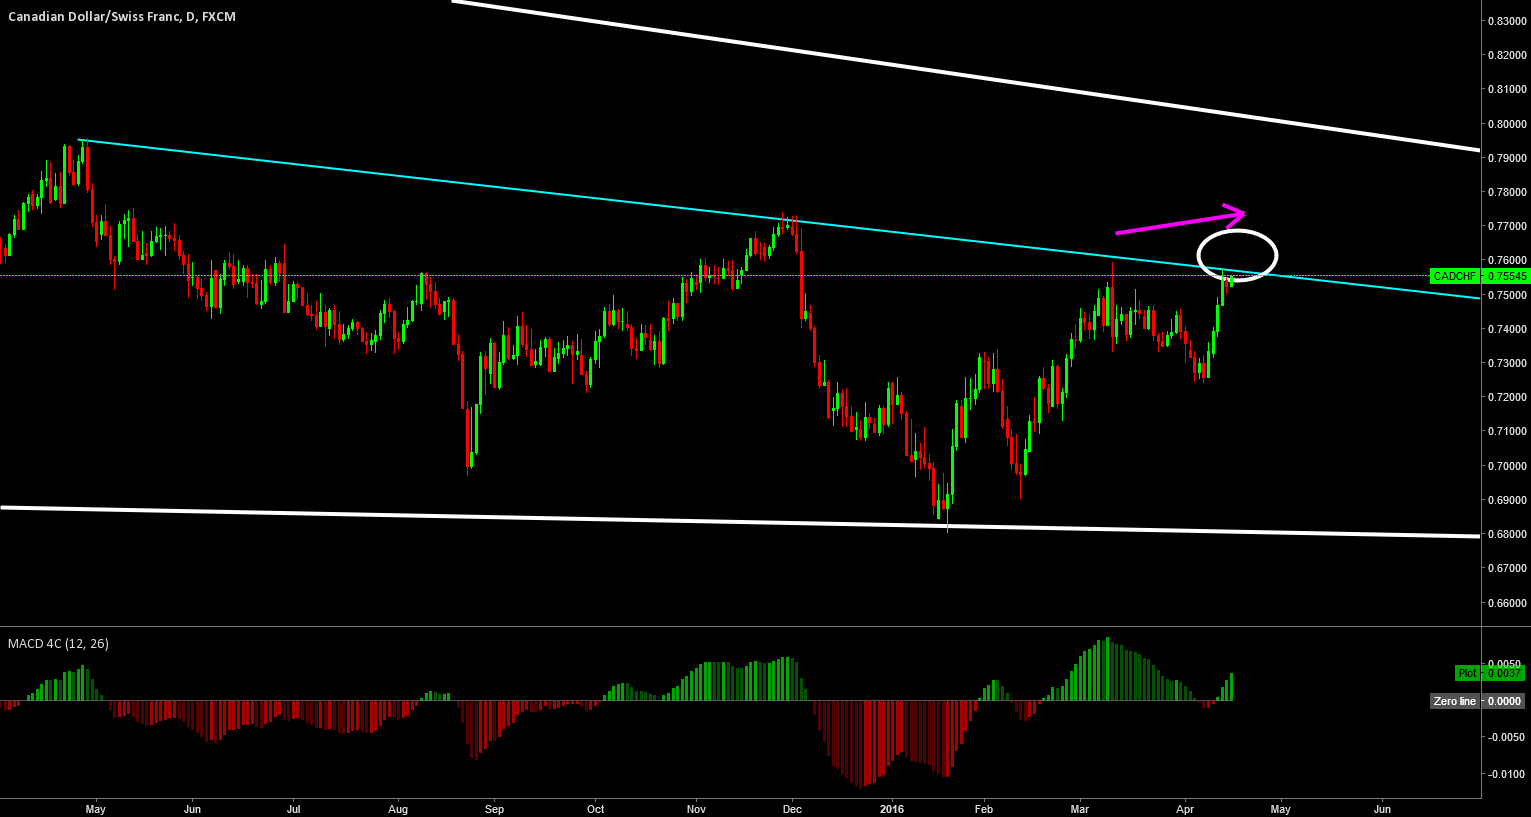 CADCHF: WAITING FOR  HIGHER HIGH AND A REJECTION